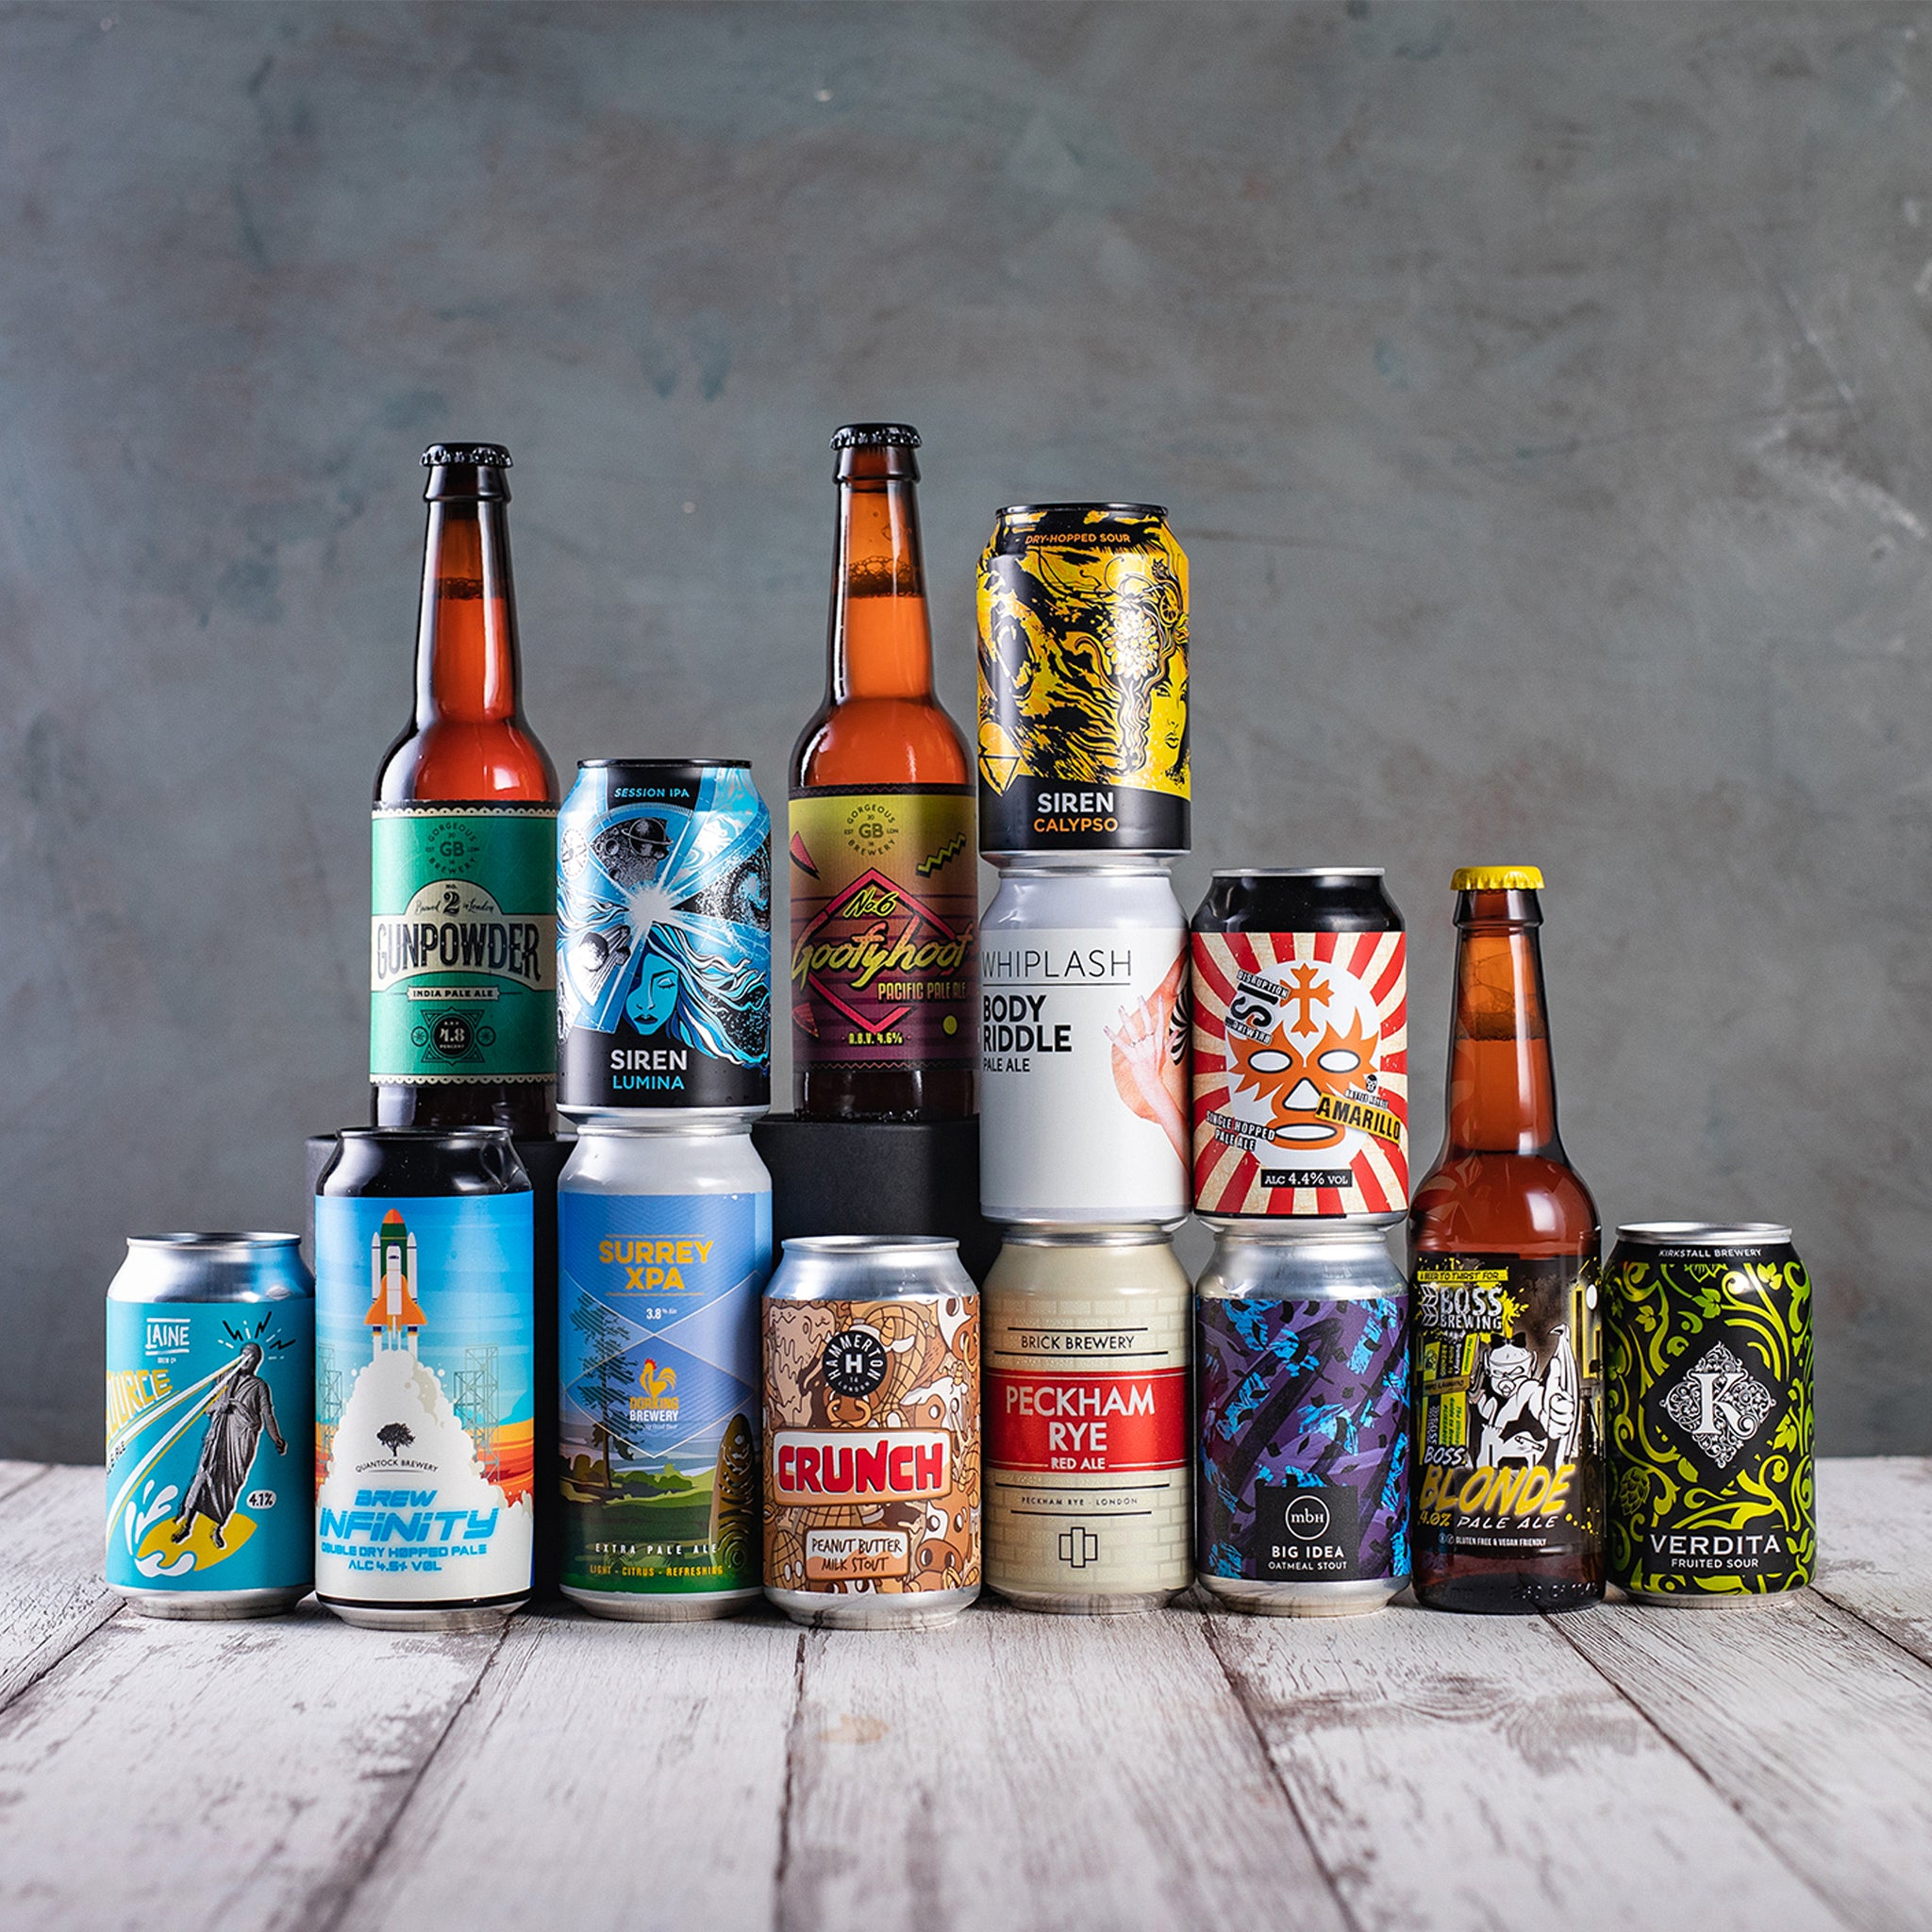 Discovery Renewal Case 14 beers January 2021